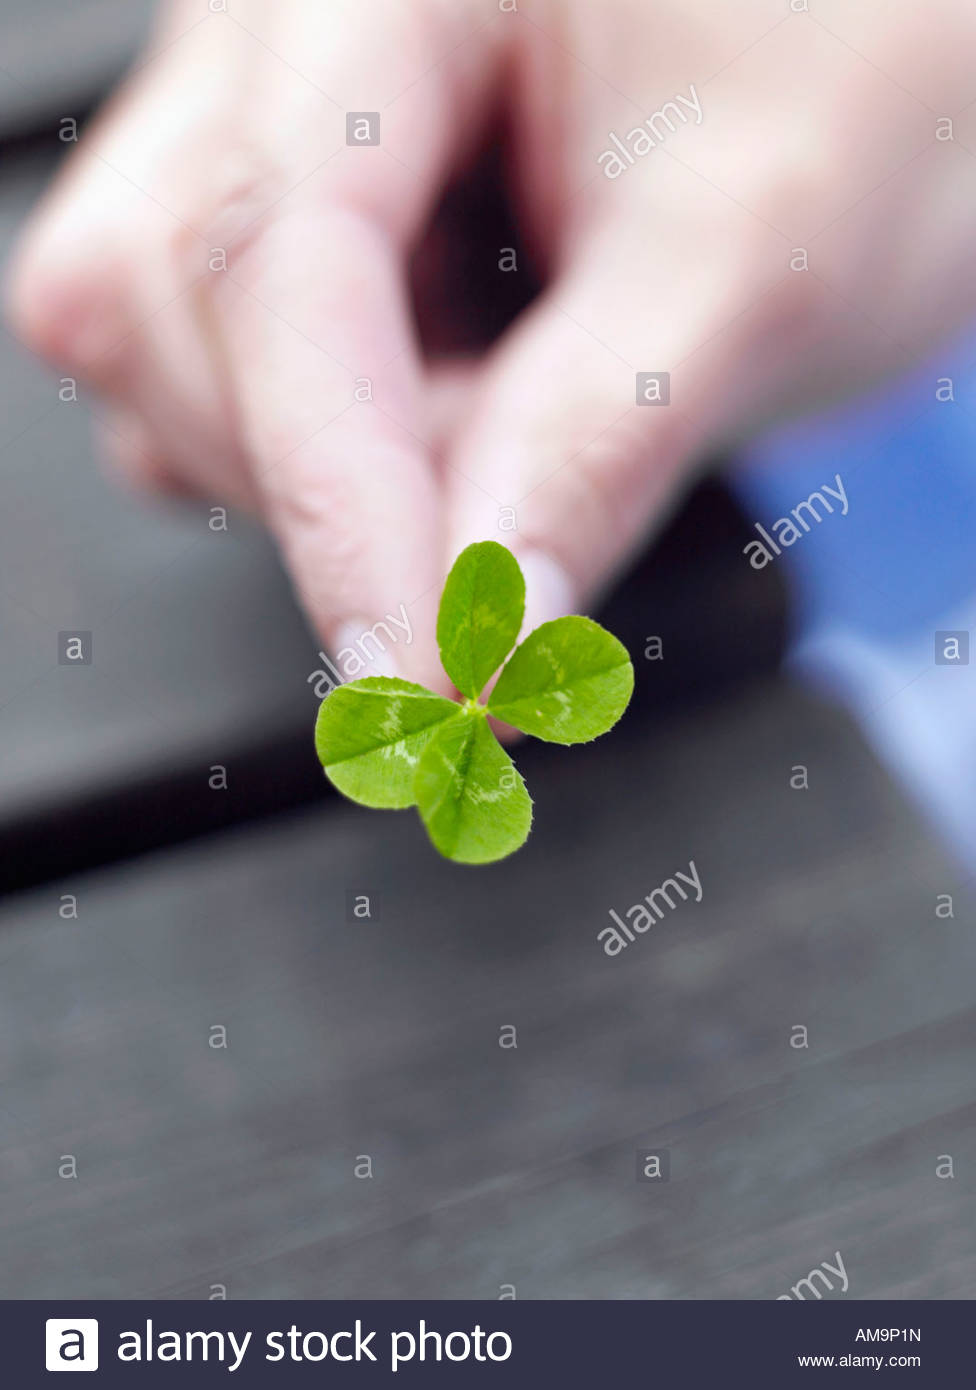 A woman's hand holding a four leaf clover. Stock Photo